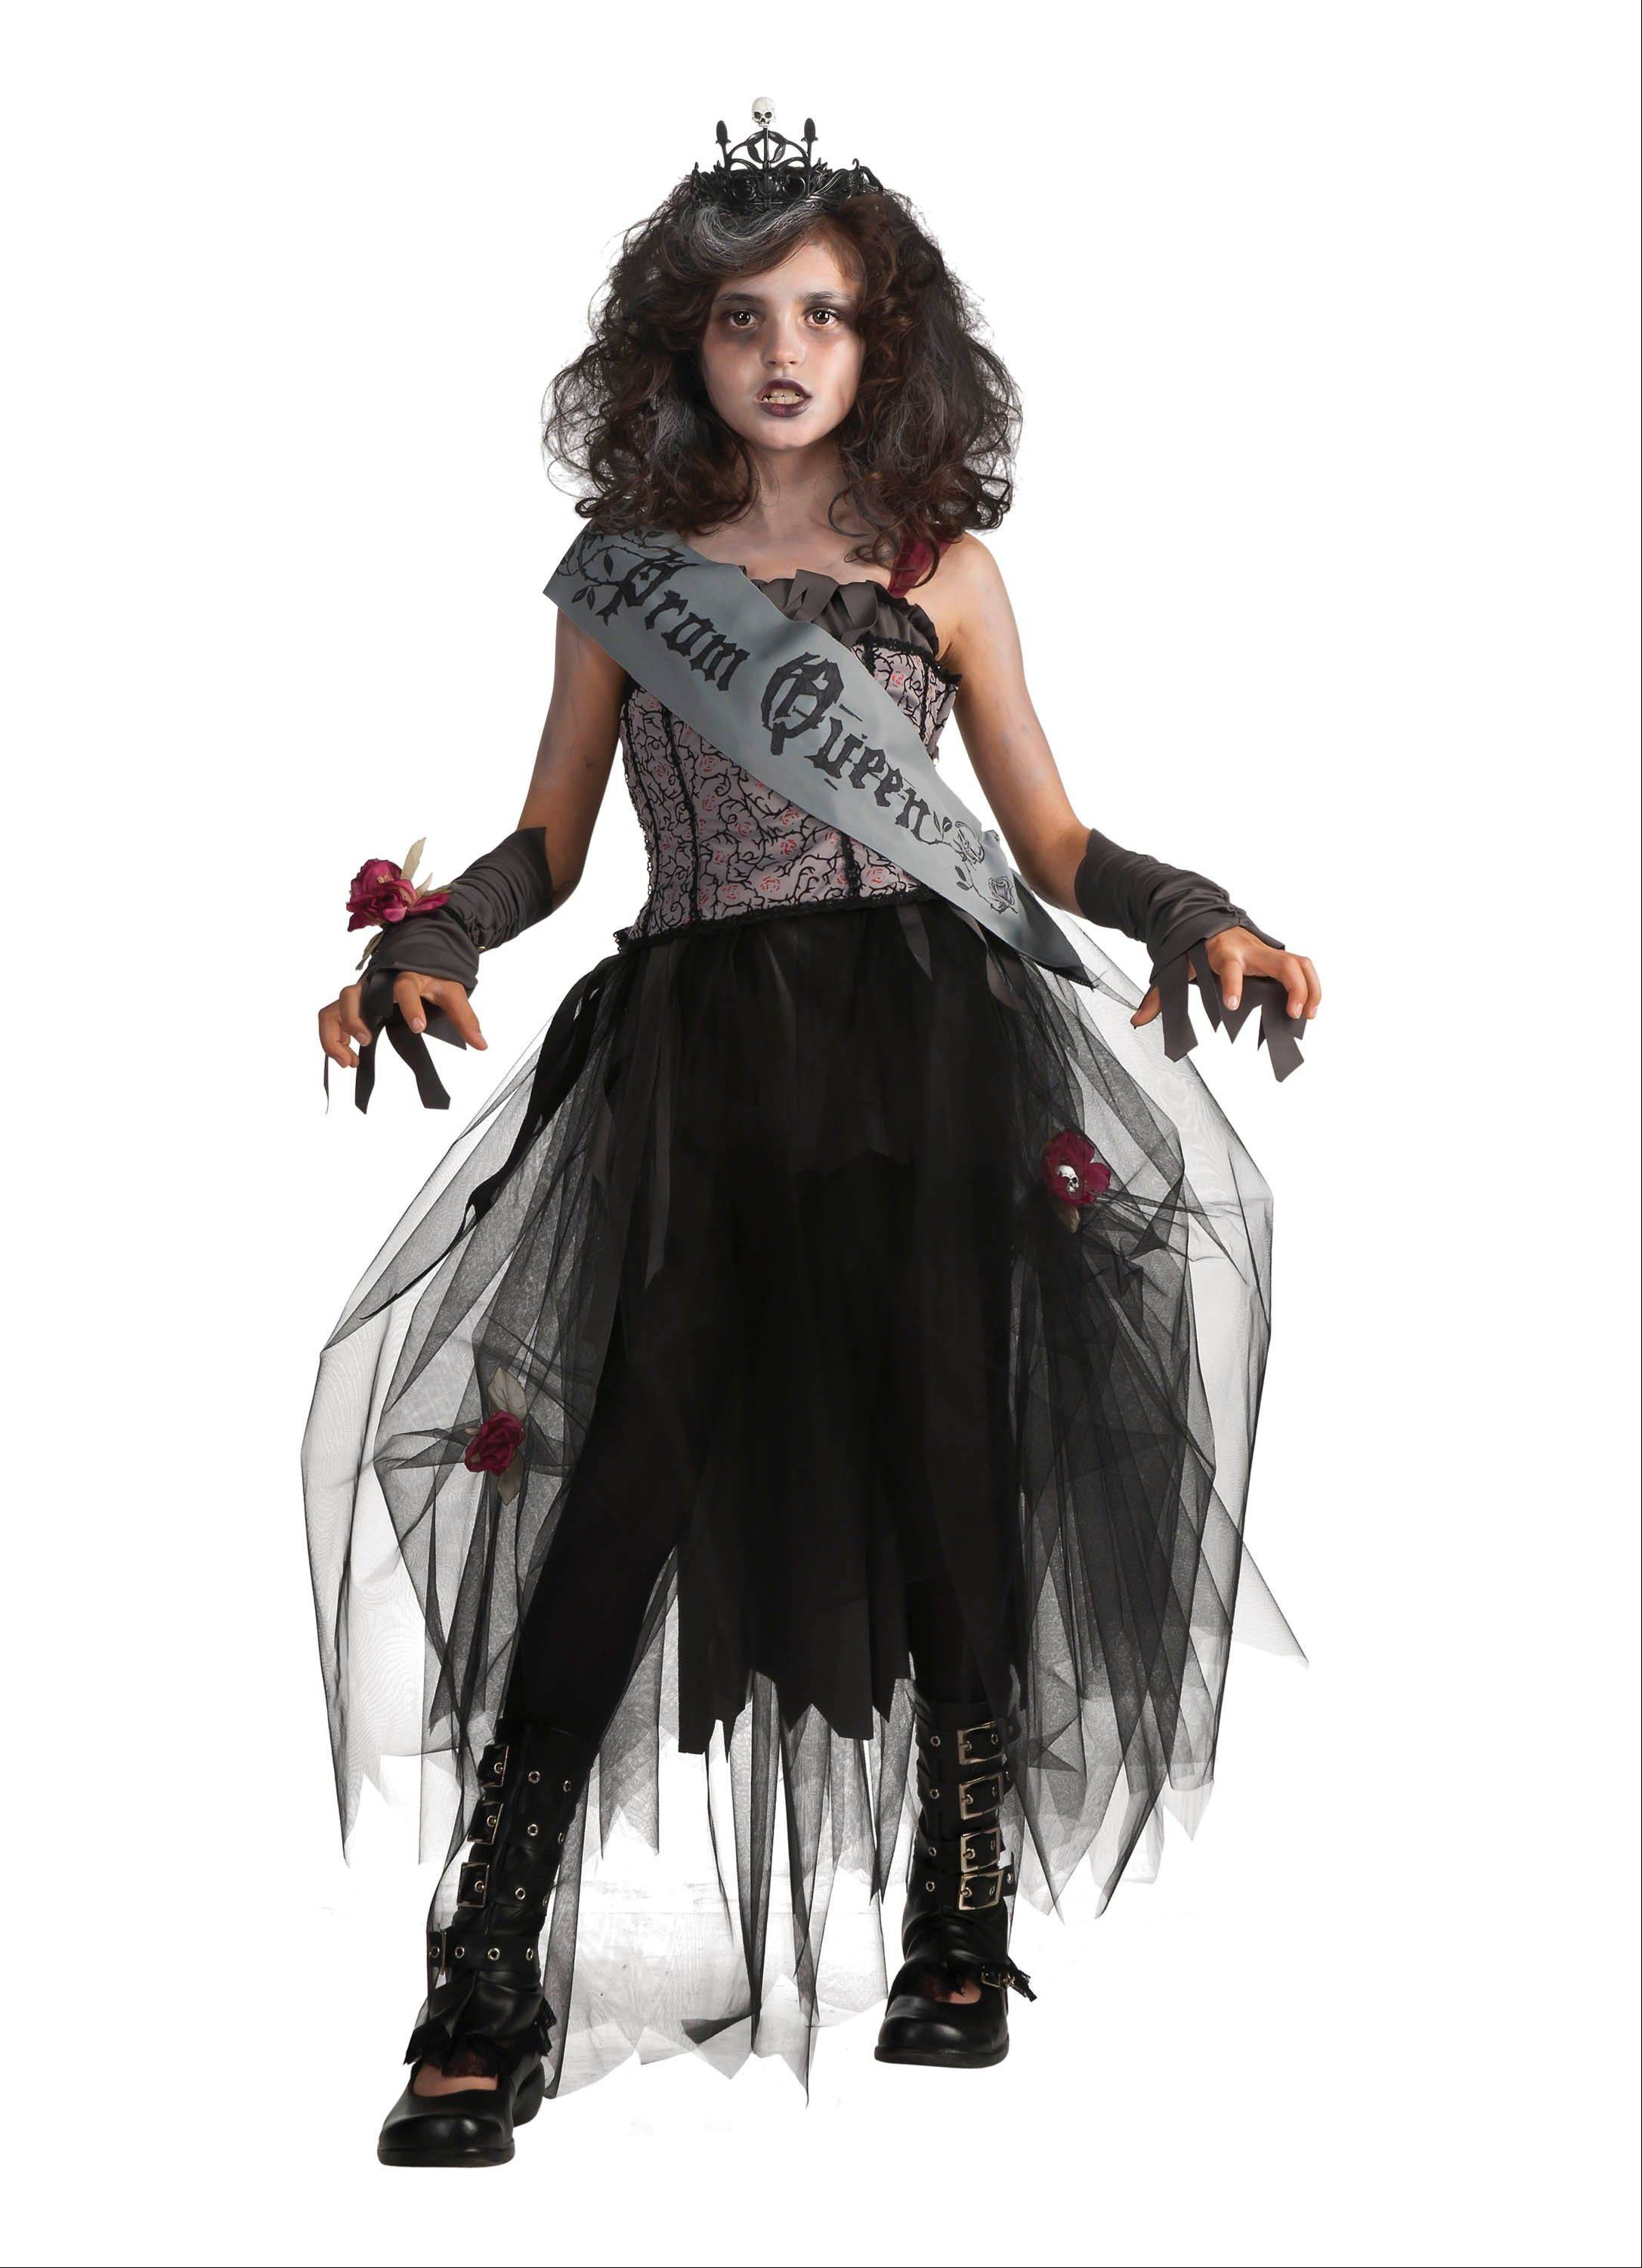 Catering to the zombie craze, Halloween costumes for young children are getting more gory -- like this zombie queen outfit.